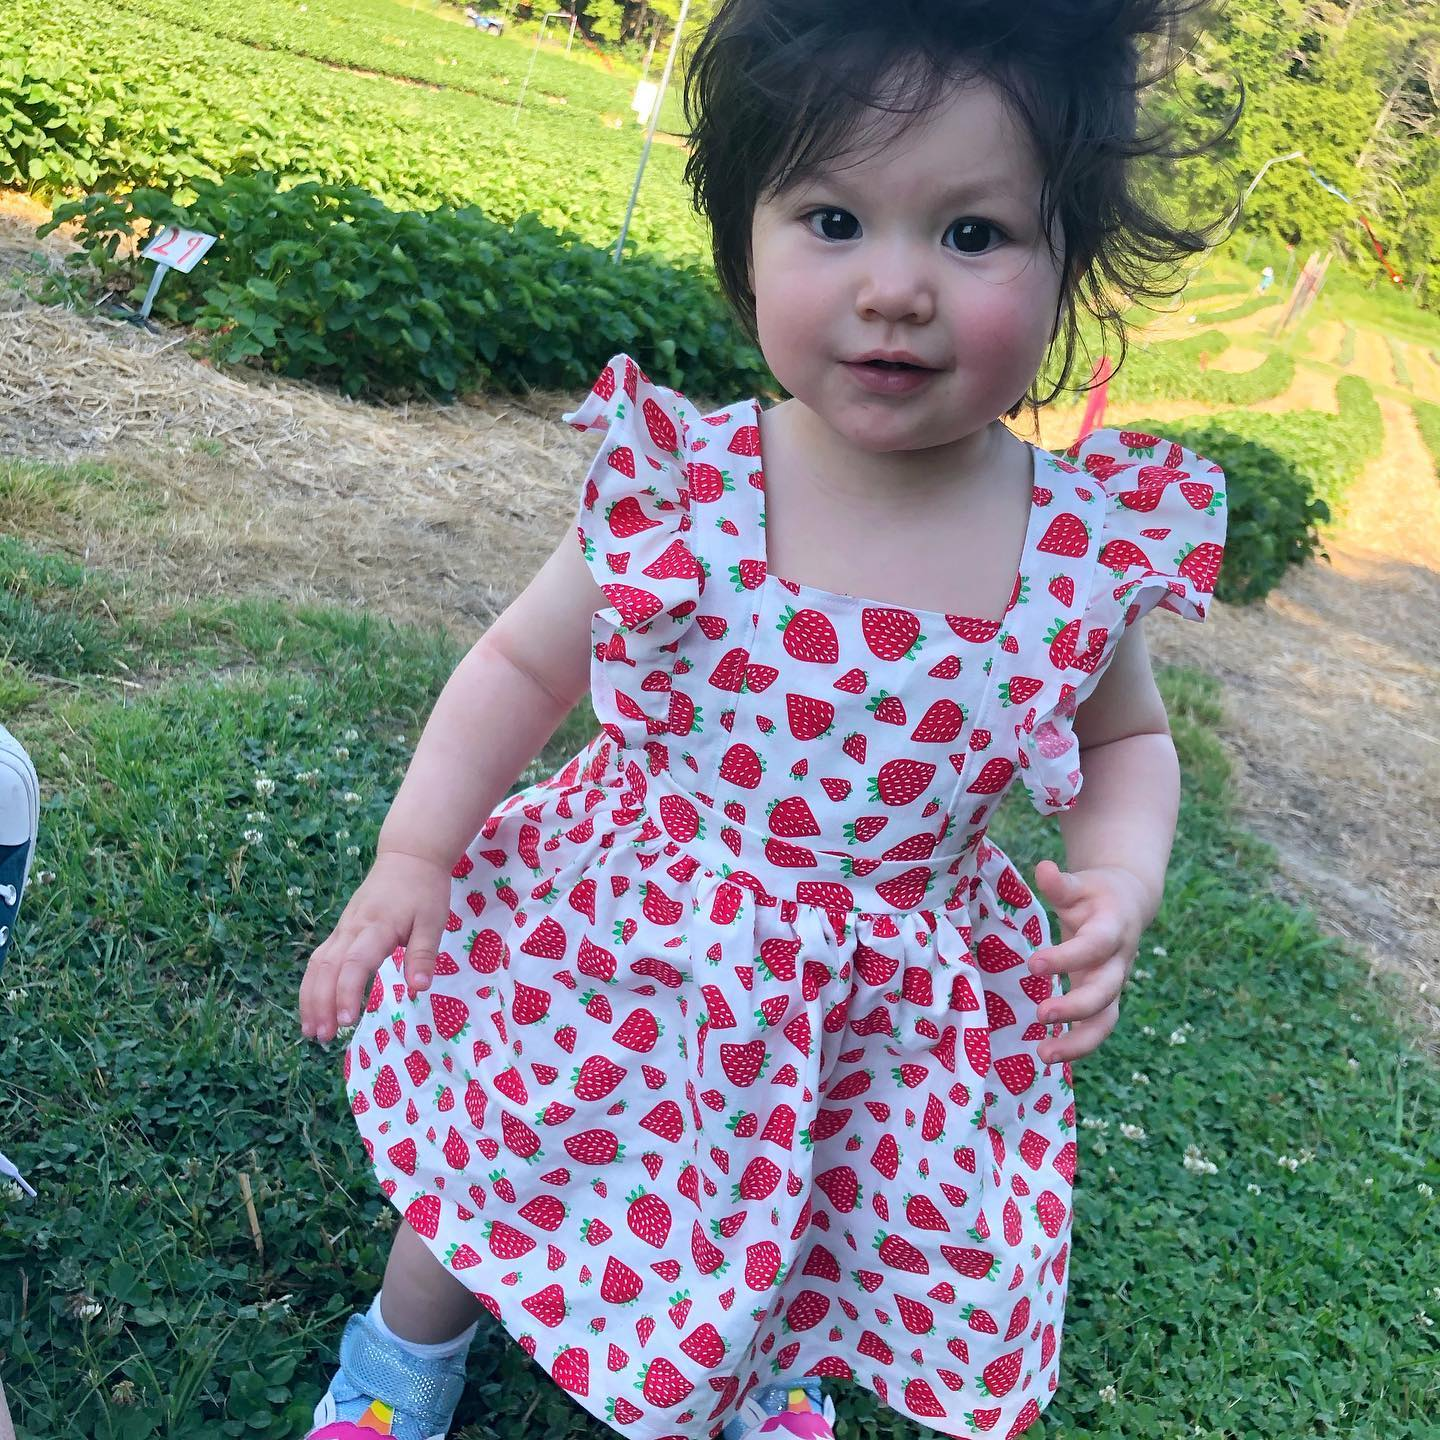 Strawberry fun for little ones